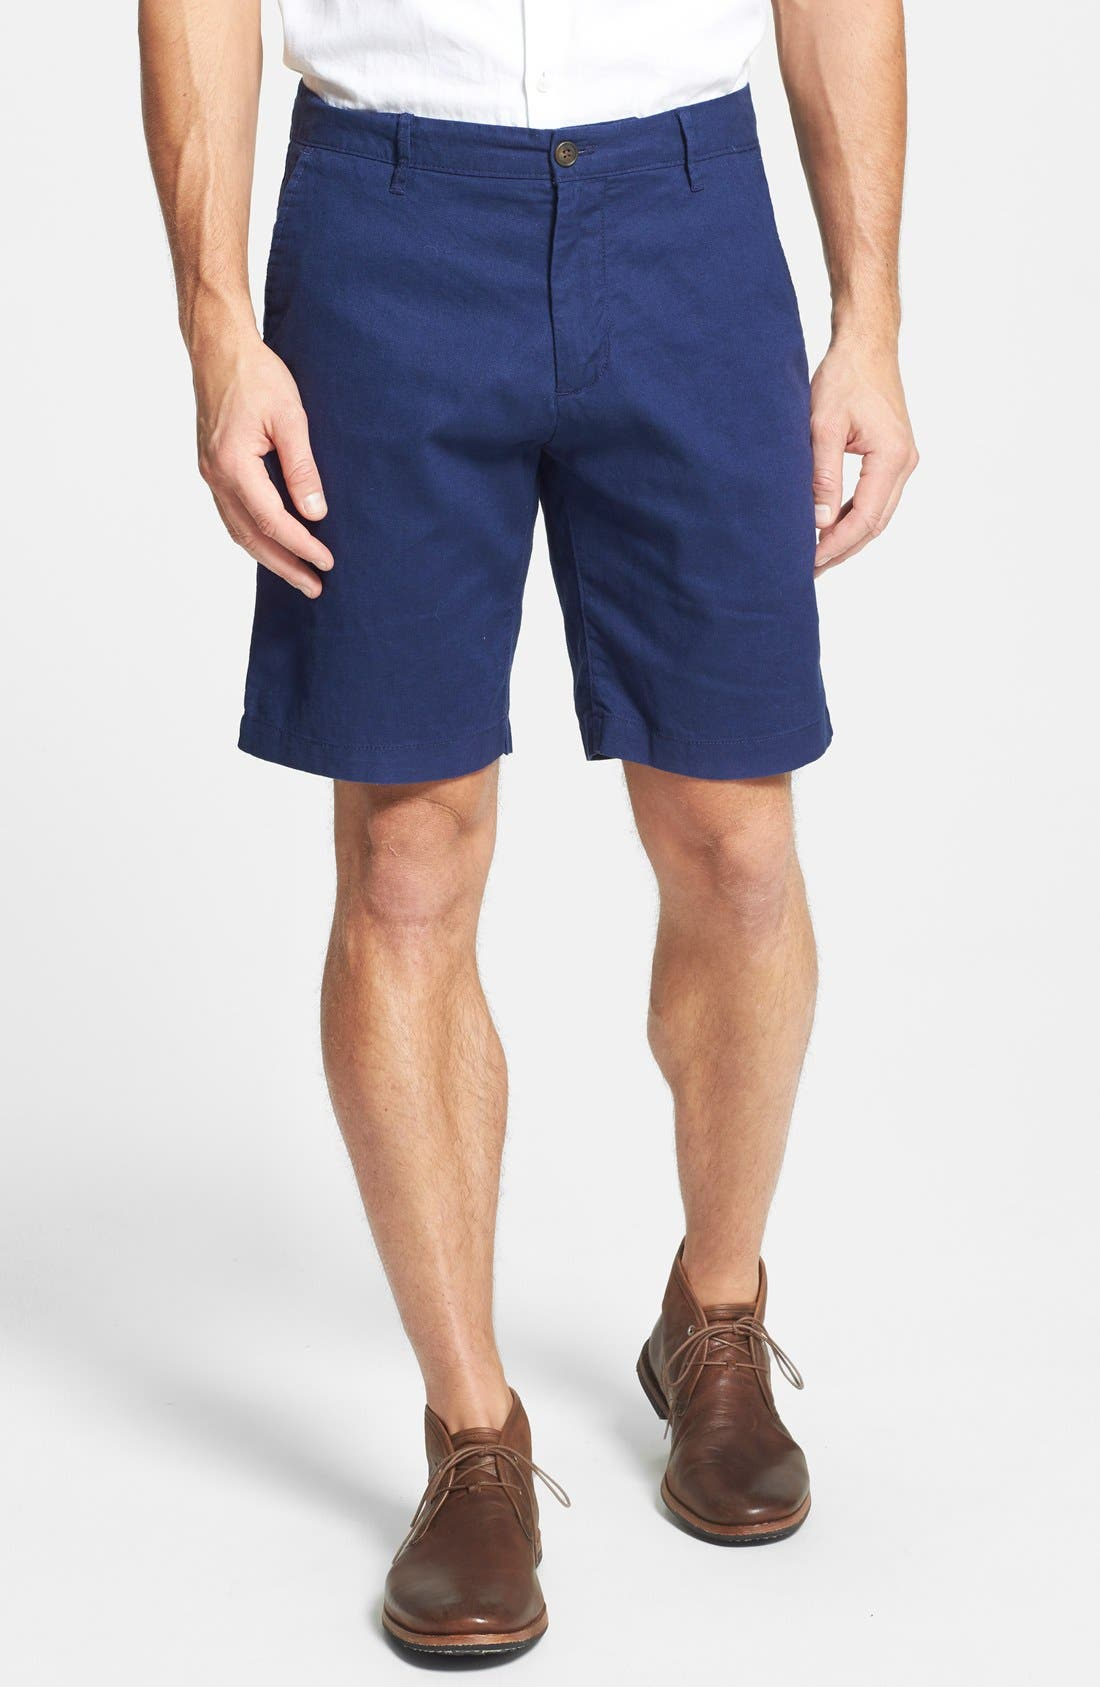 Alternate Image 1 Selected - Bonobos 'Kennedy' Flat Front Cotton & Linen Shorts